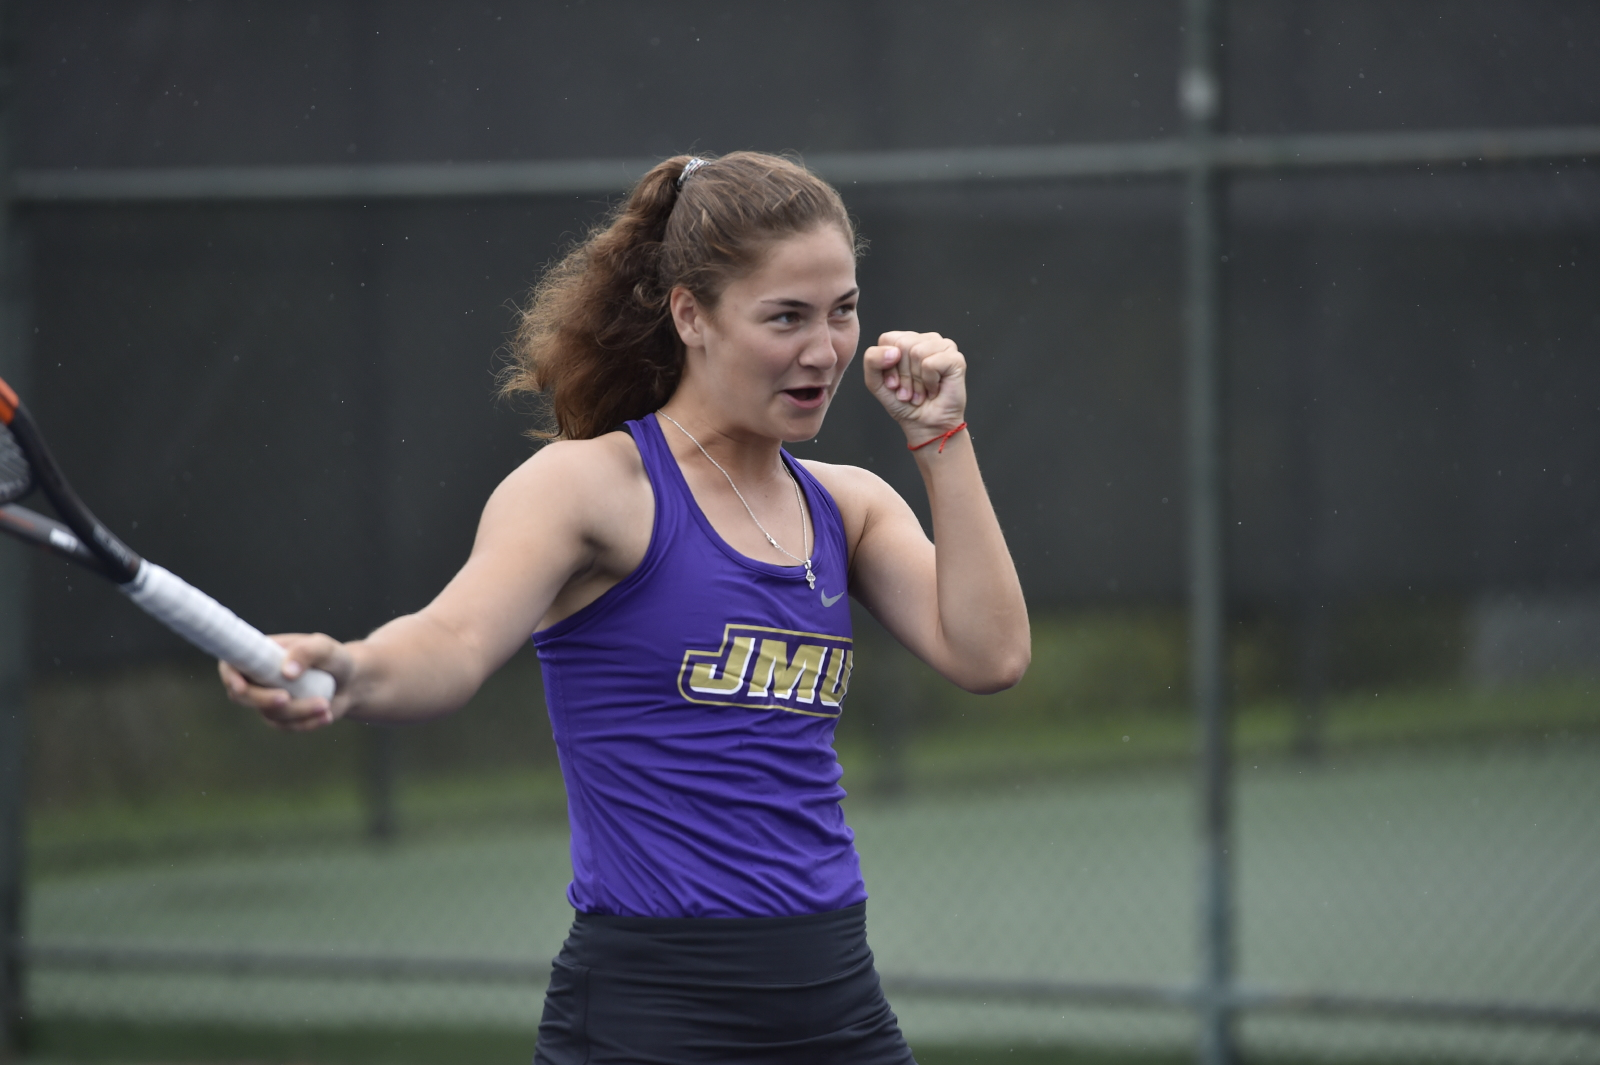 Women's Tennis: Dukes Trounce Richmond 6-1